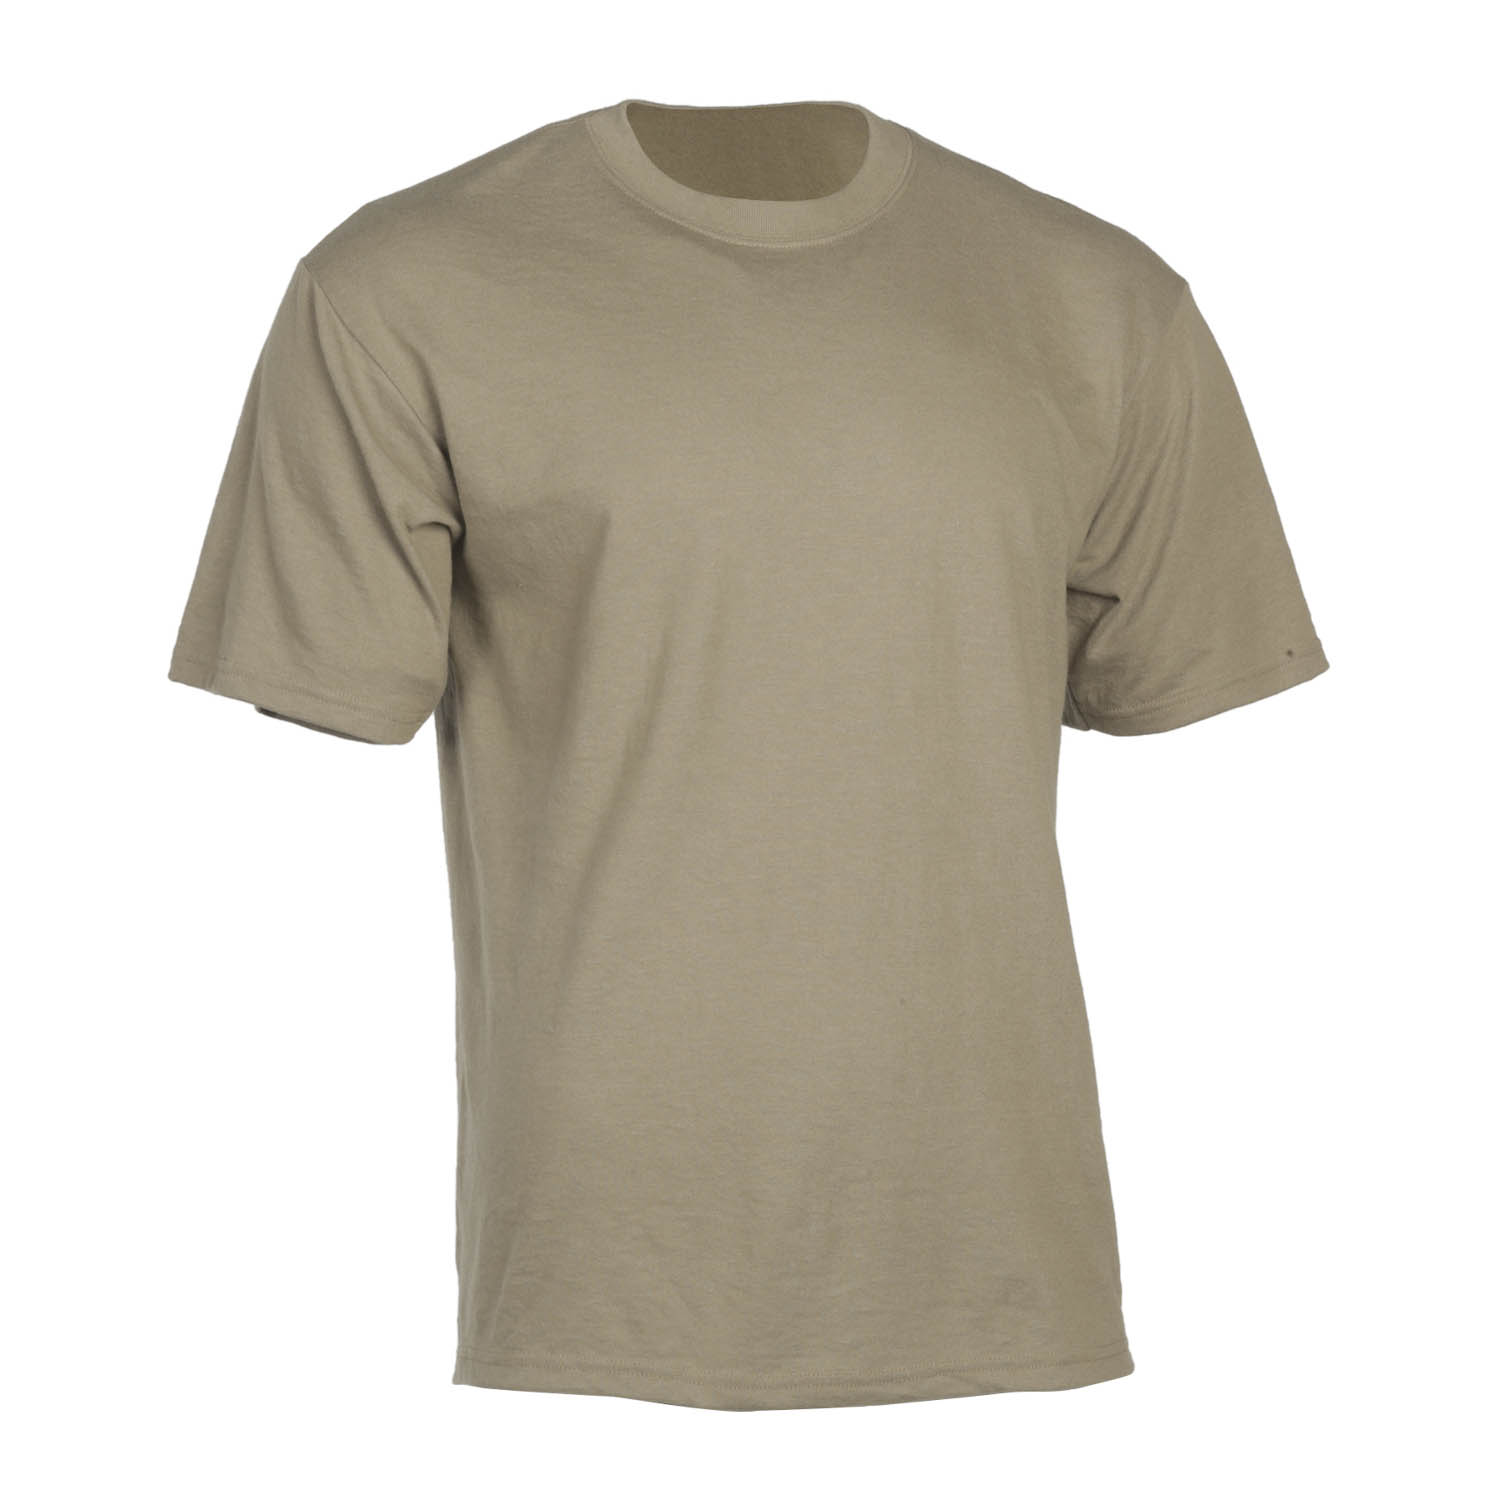 Soffe Performance Dri-Release Short Sleeve Tee